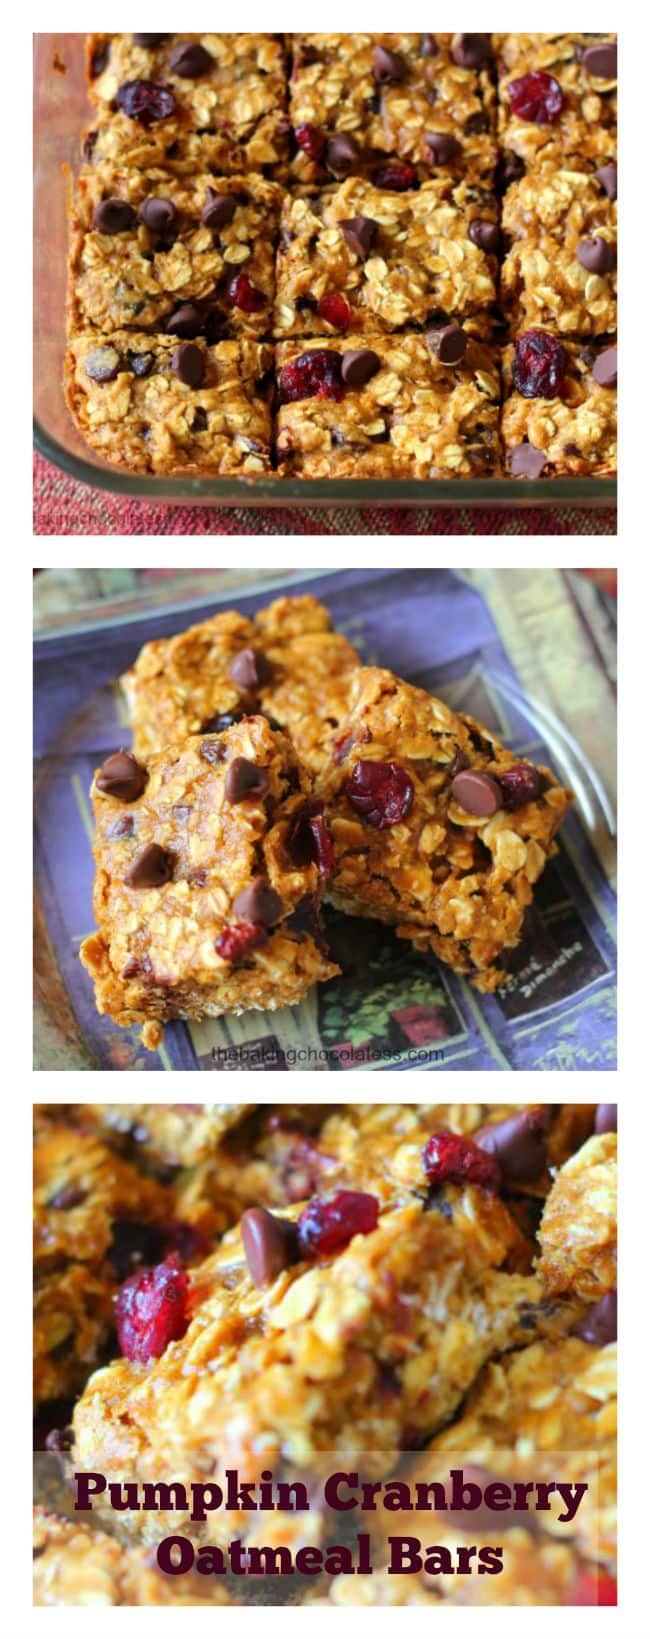 These Pumpkin Cranberry Chocolate Chip Oatmeal Bars are the perfect healthy, energy-fiber bar, quick snack on the go and delicious!